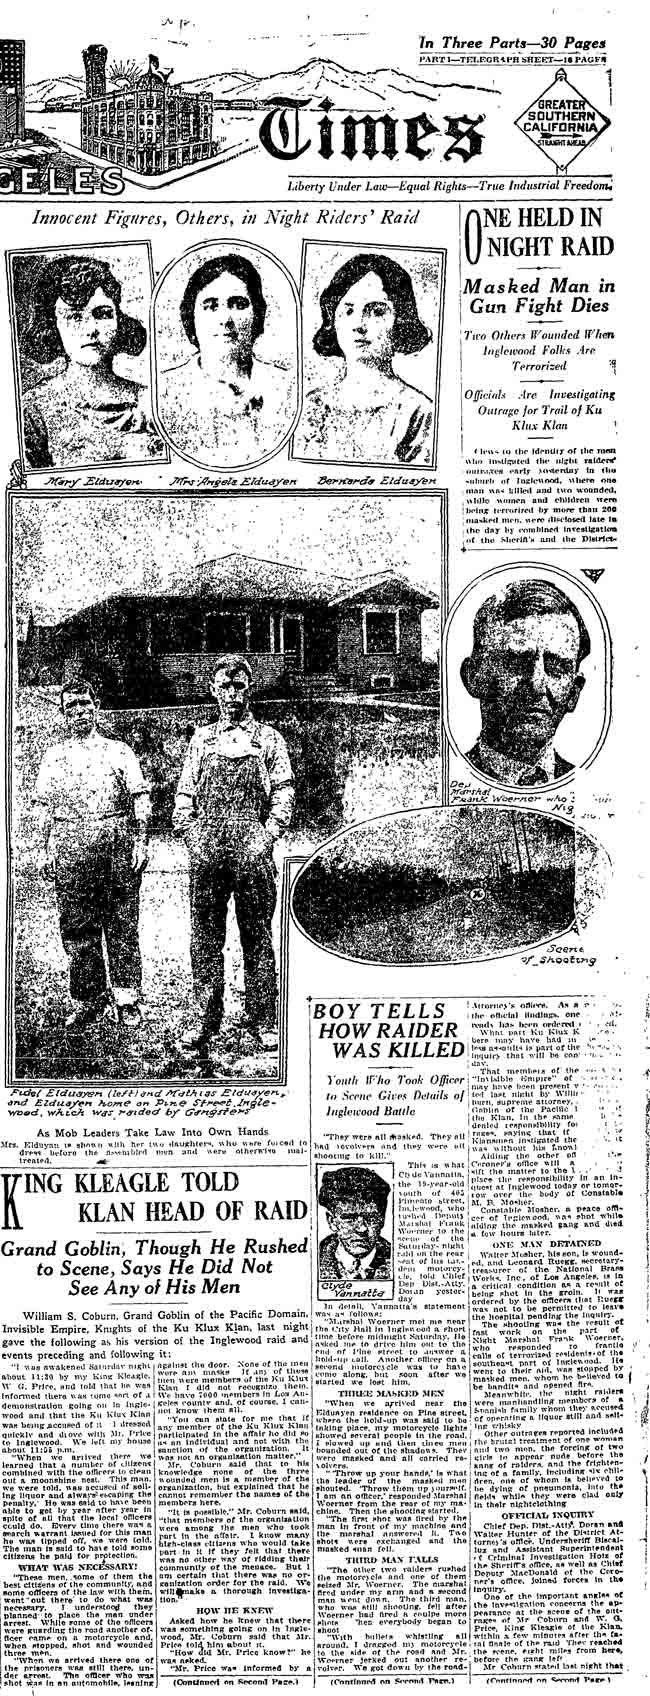 1923.04.22-Los Angeles Times Front Page.jpg